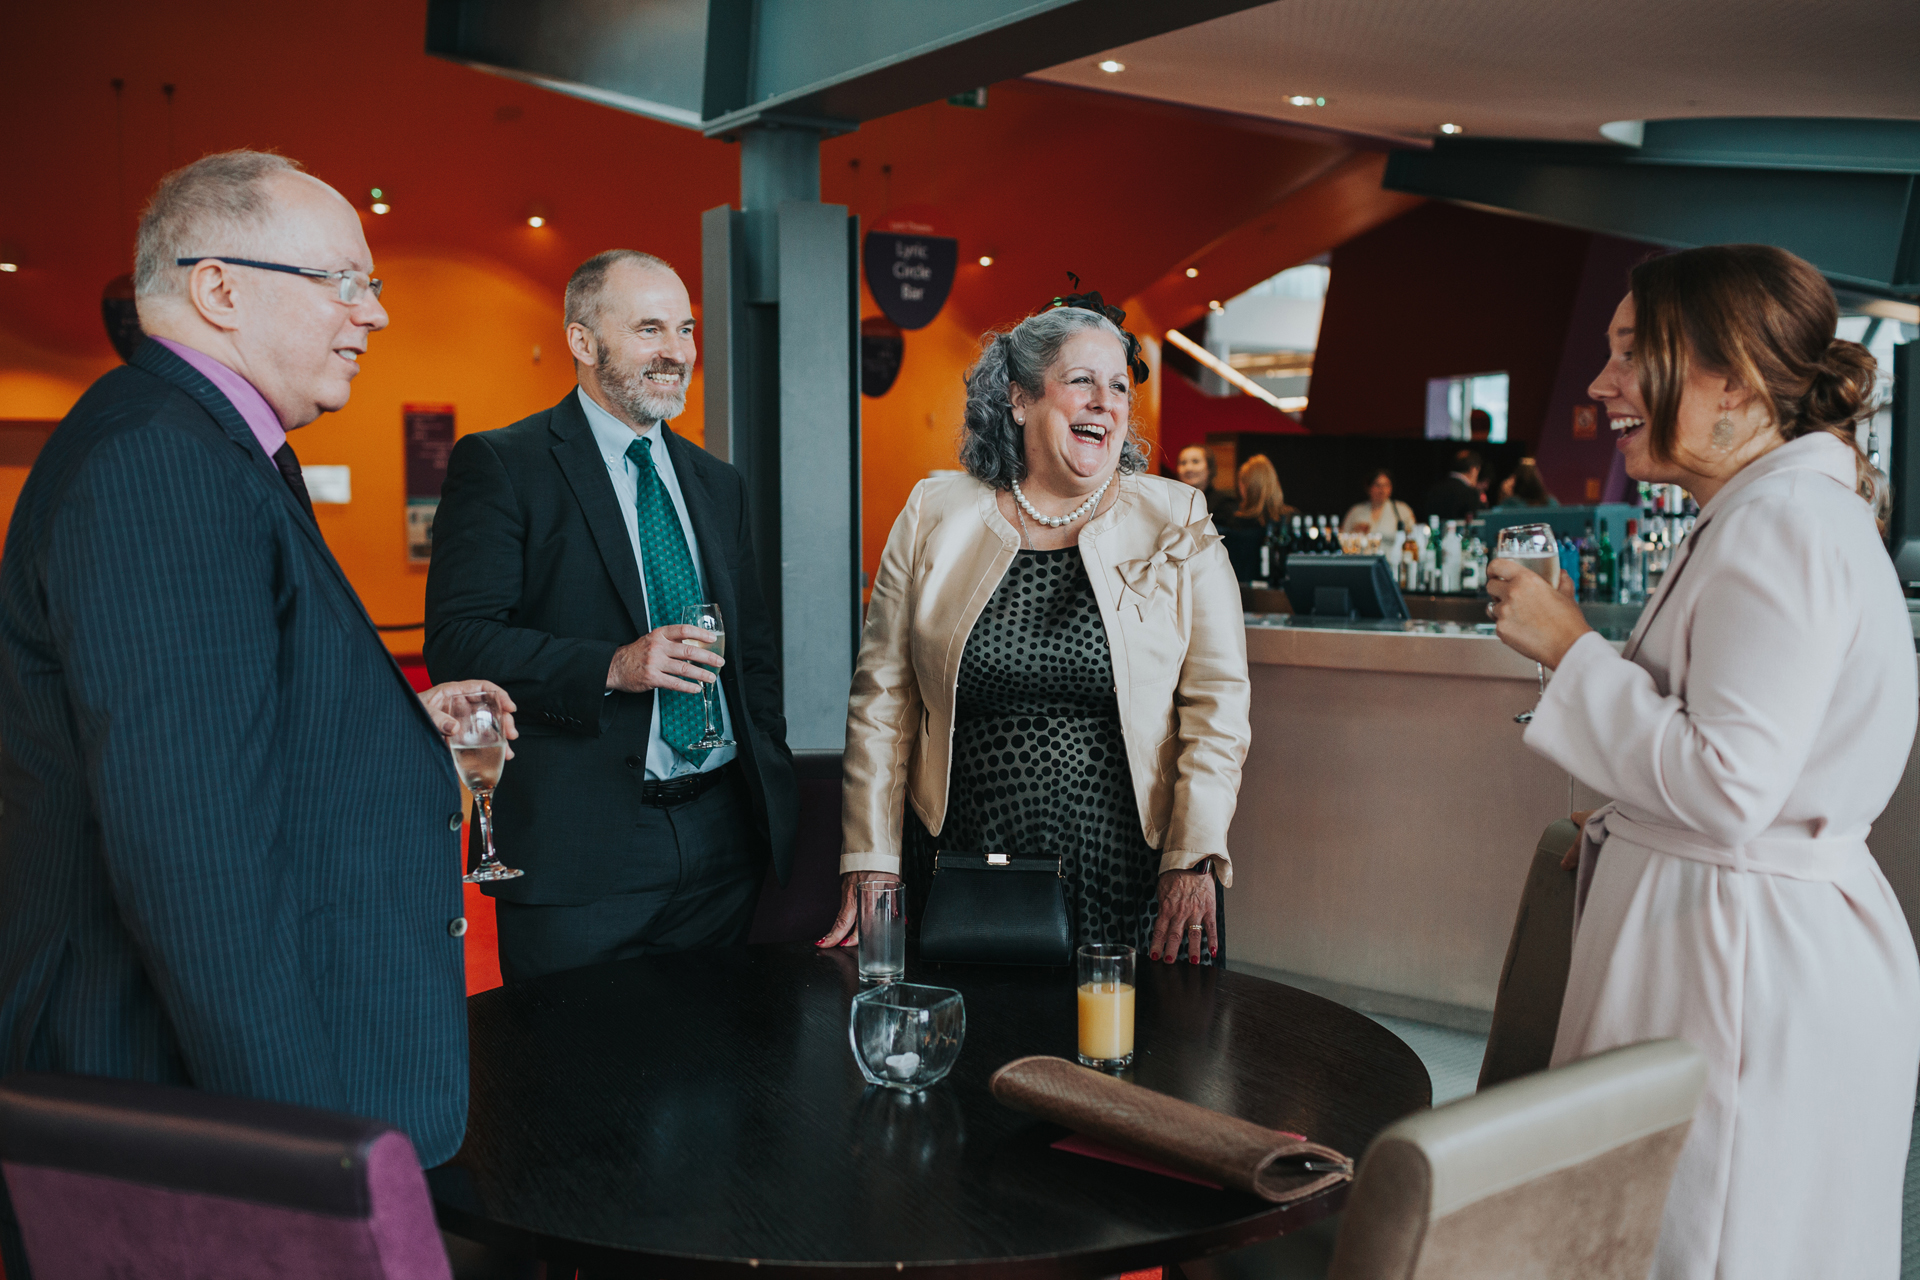 Four Wedding Guests Laugh together.